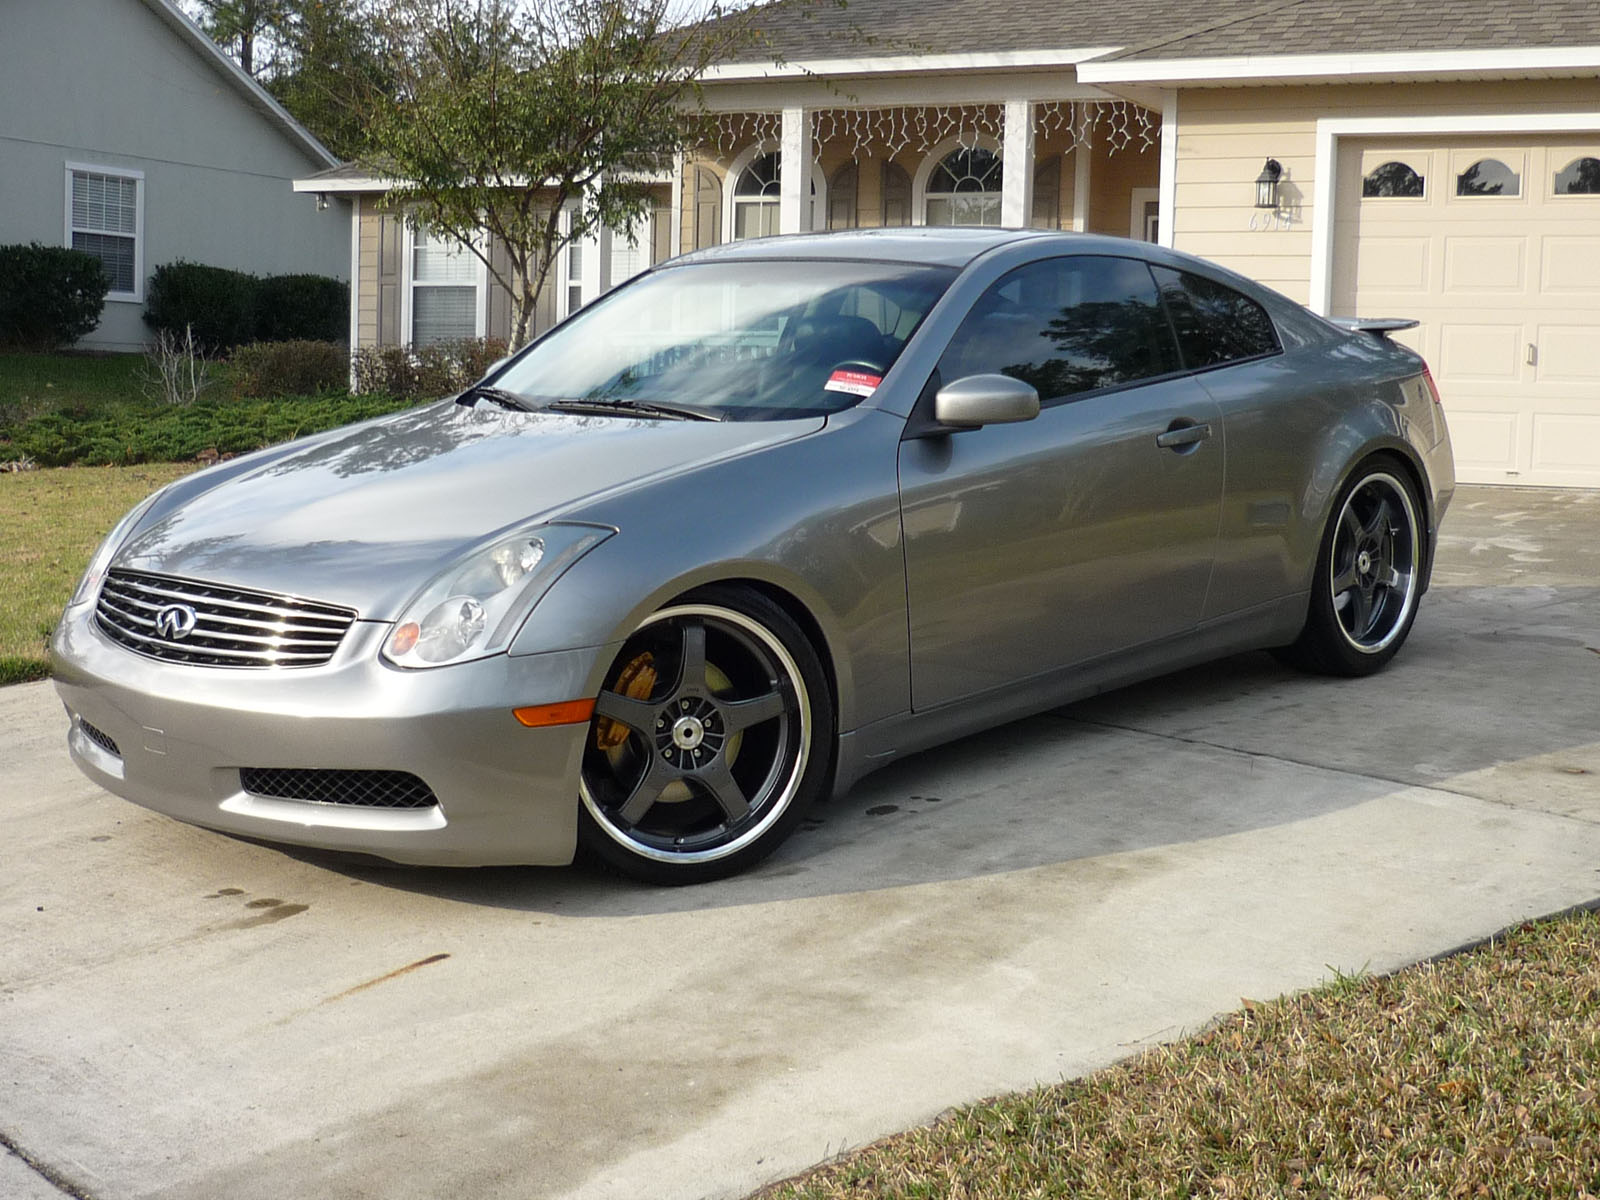 2003 infiniti g35 coupe for sale alachua florida. Black Bedroom Furniture Sets. Home Design Ideas